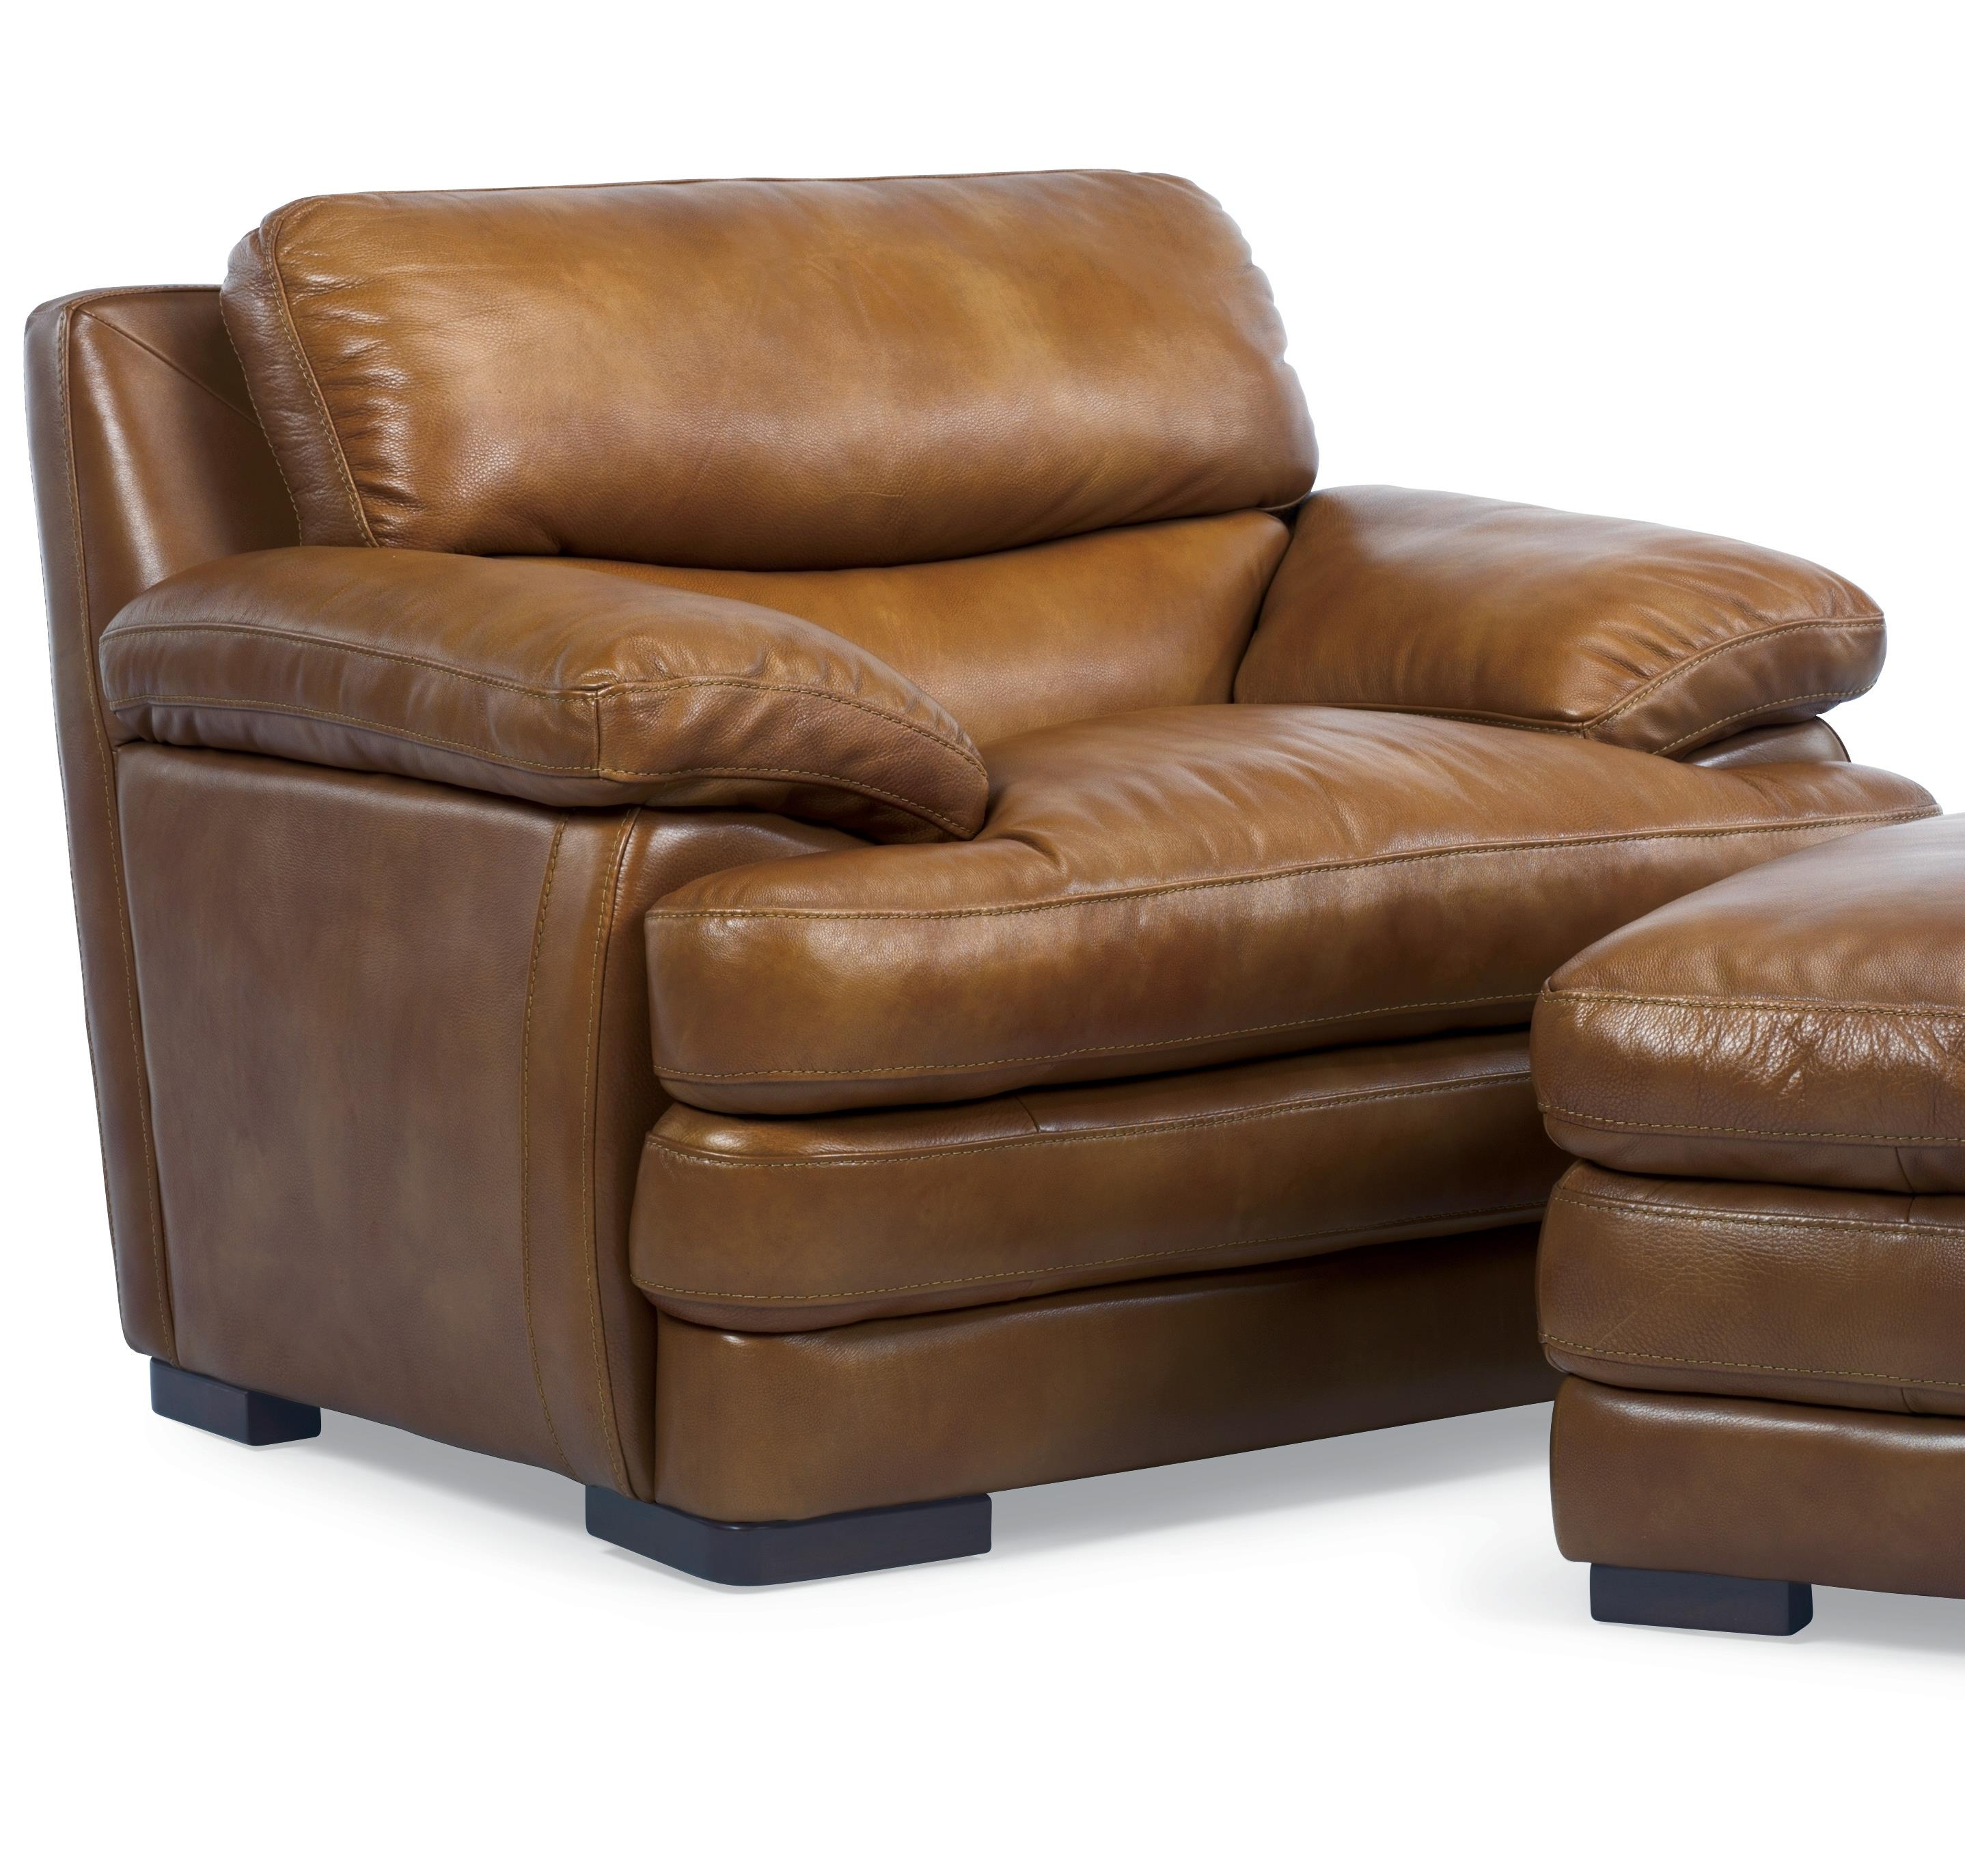 Flexsteel Latitudes   Dylan Leather Chair   Item Number: 1127 10 908